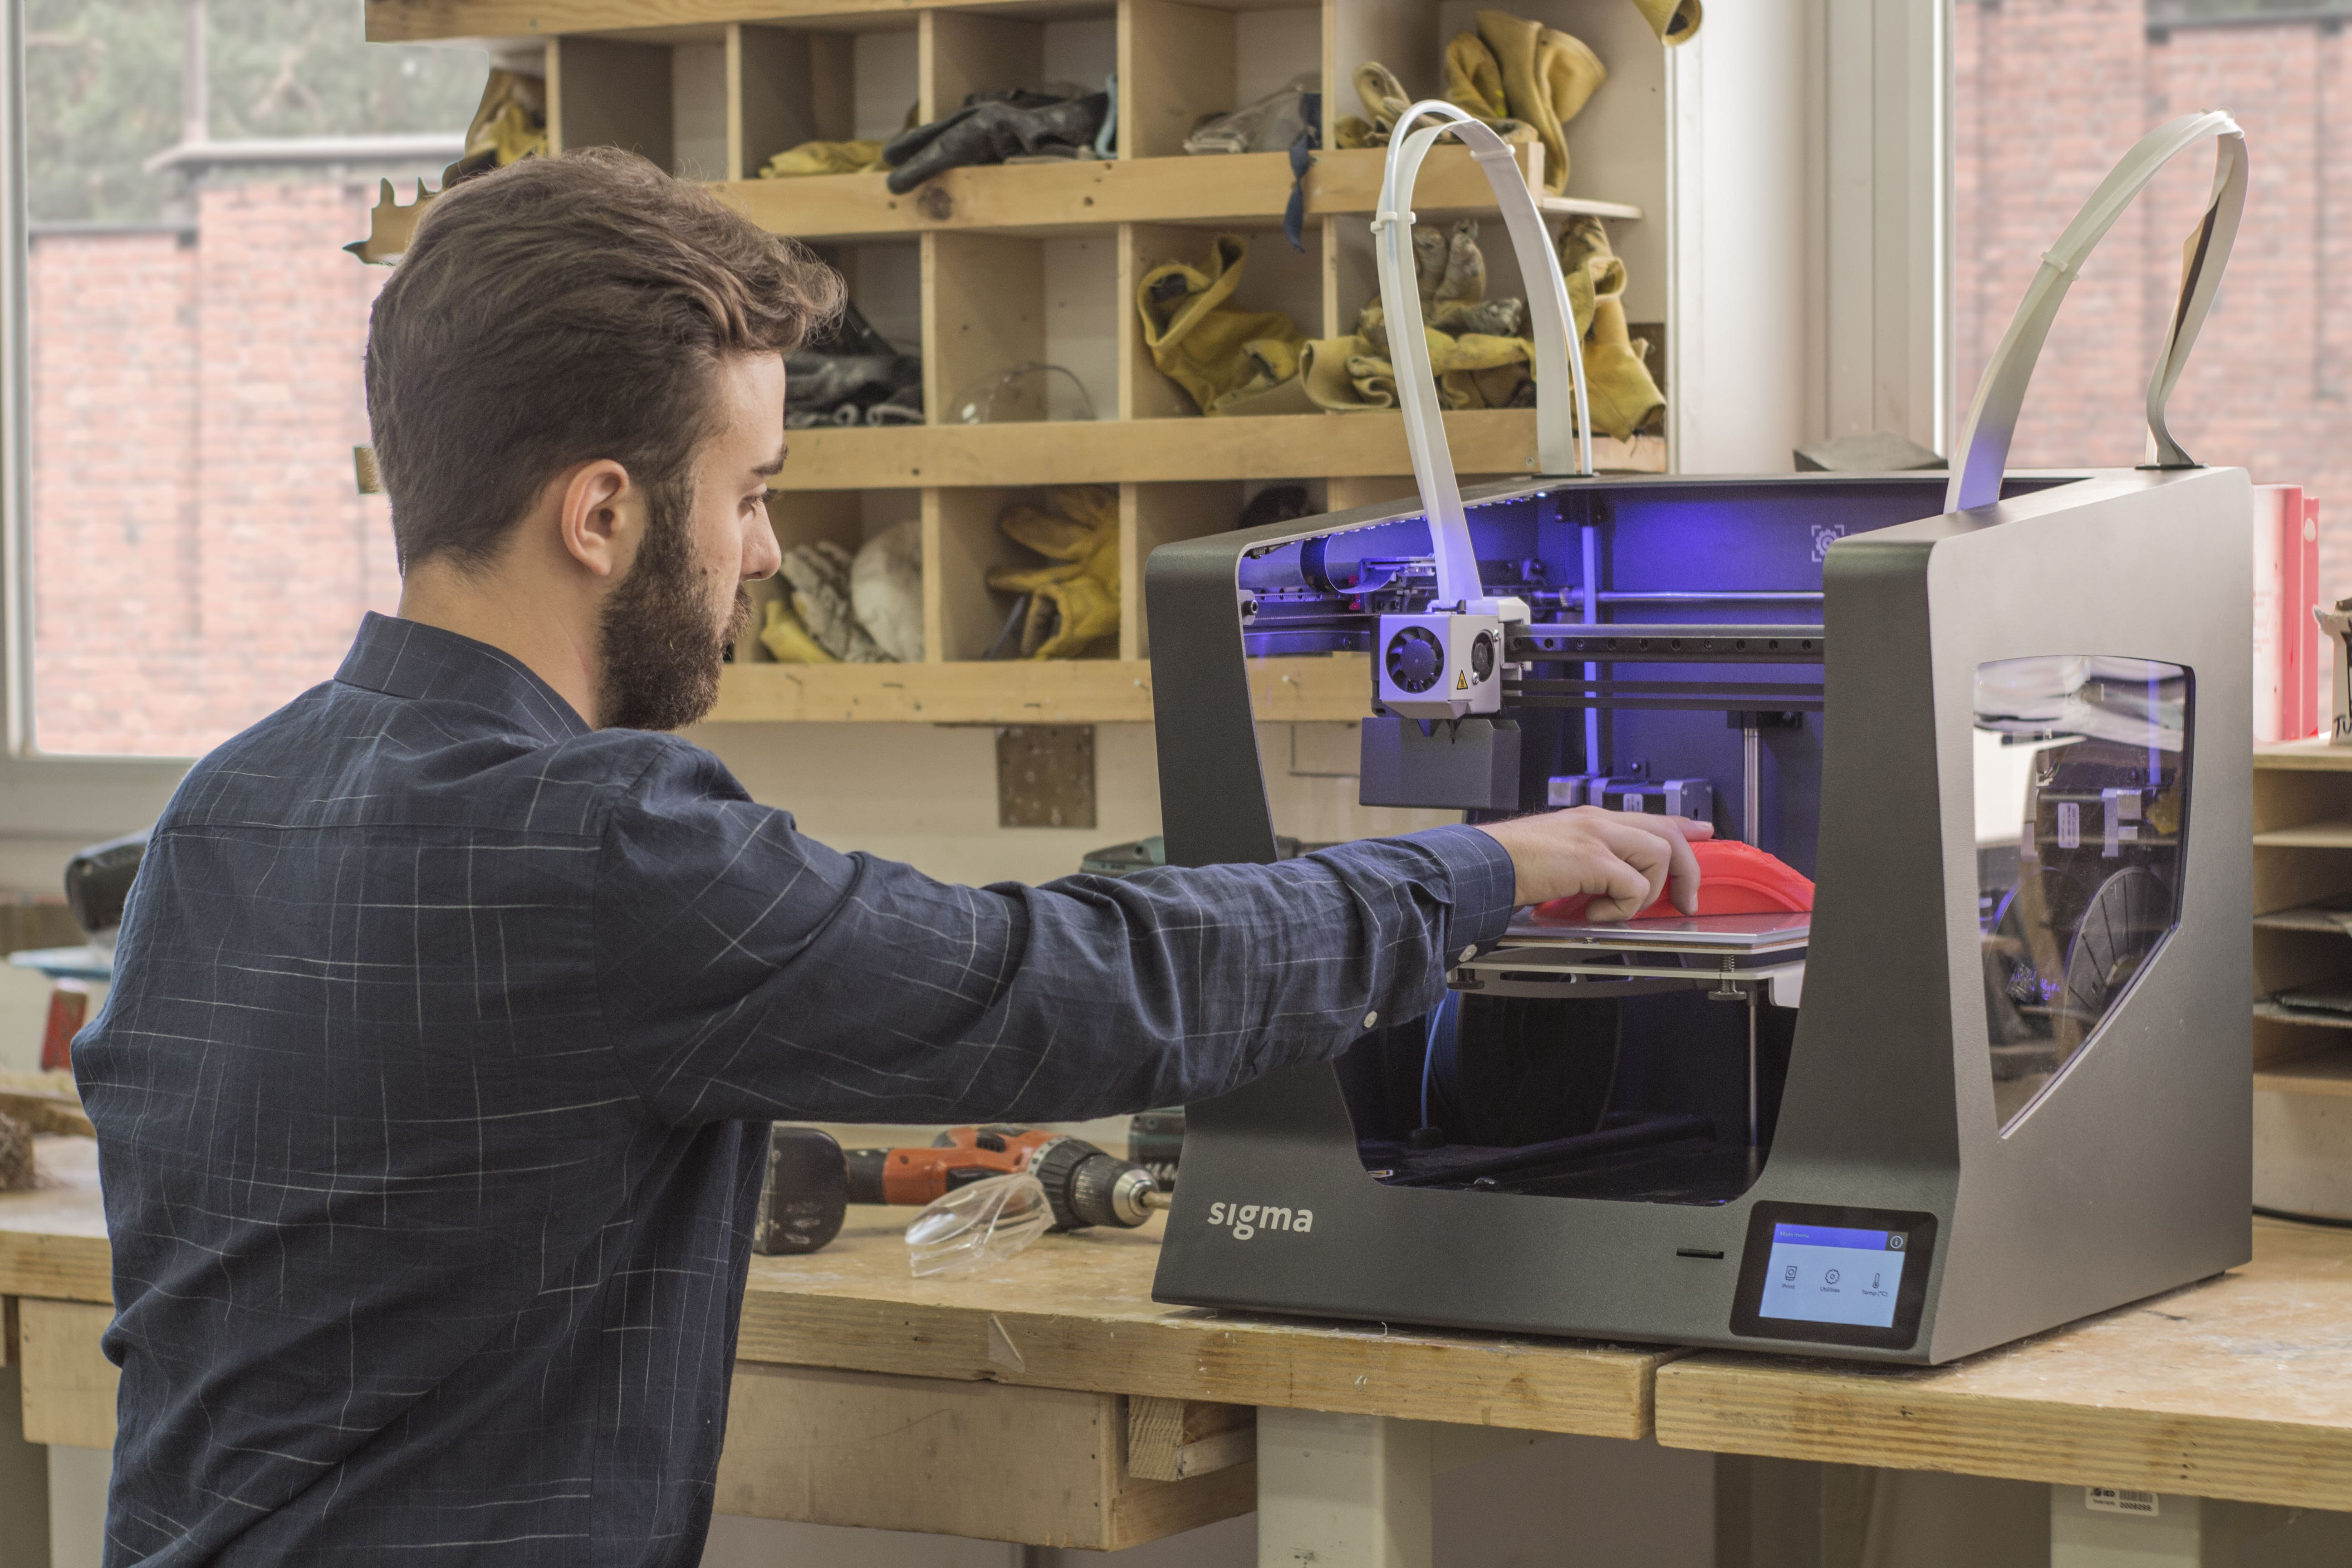 A student at IED Barcelona using the Sigma 3D printer. Photo via BCN3D Technologies.